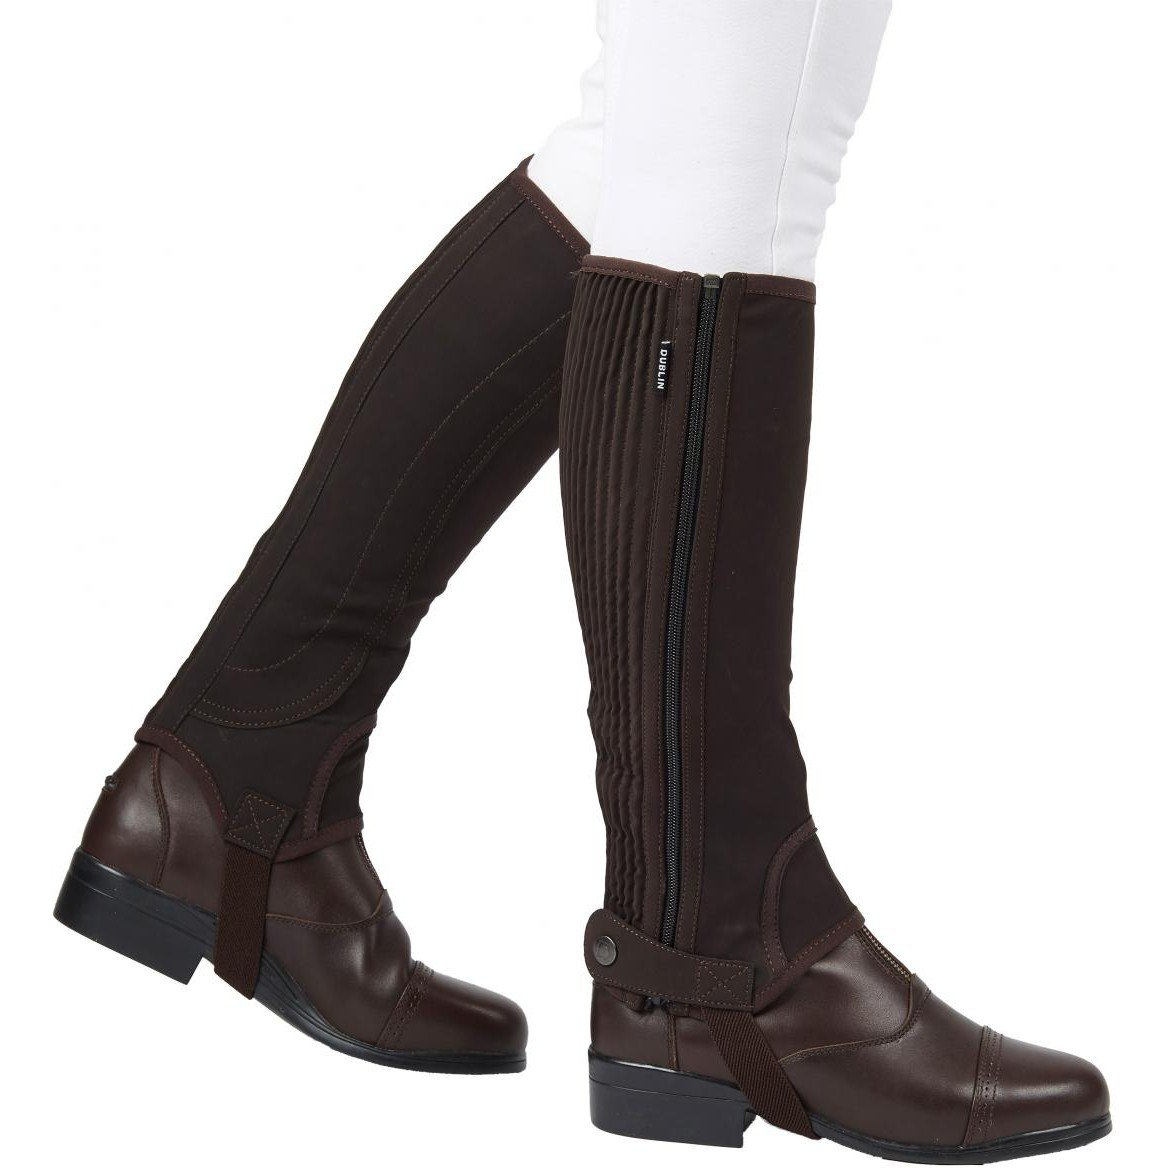 Dublin Childs Easy Care Half Chaps Large Brown